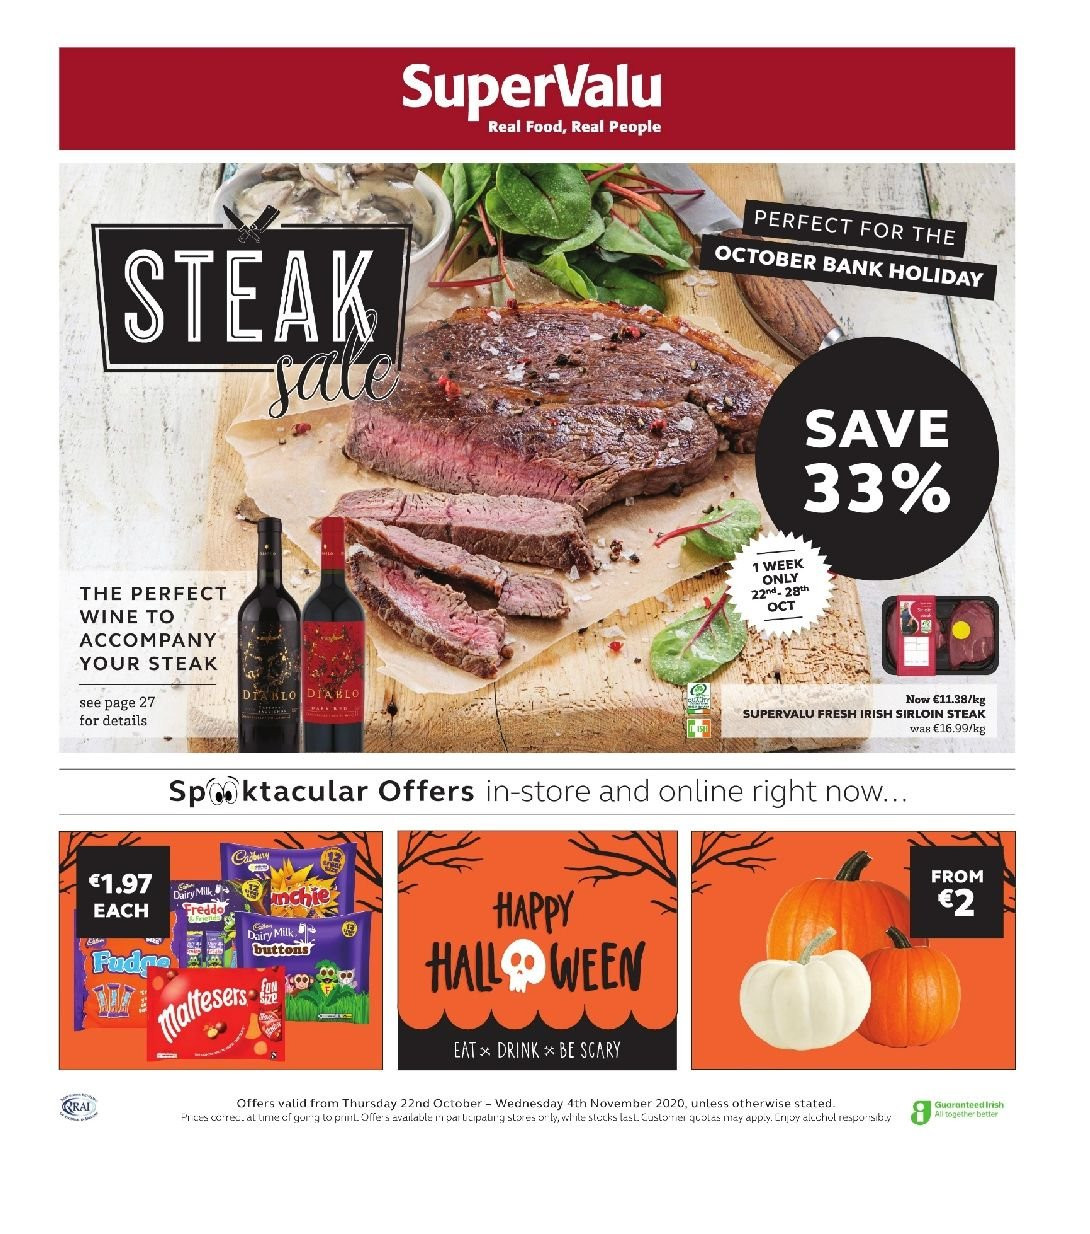 SuperValu offer  - 22.10.2020 - 4.11.2020 - Sales products - Dairy Milk, wine, beef sirloin, steak, sirloin steak. Page 1.